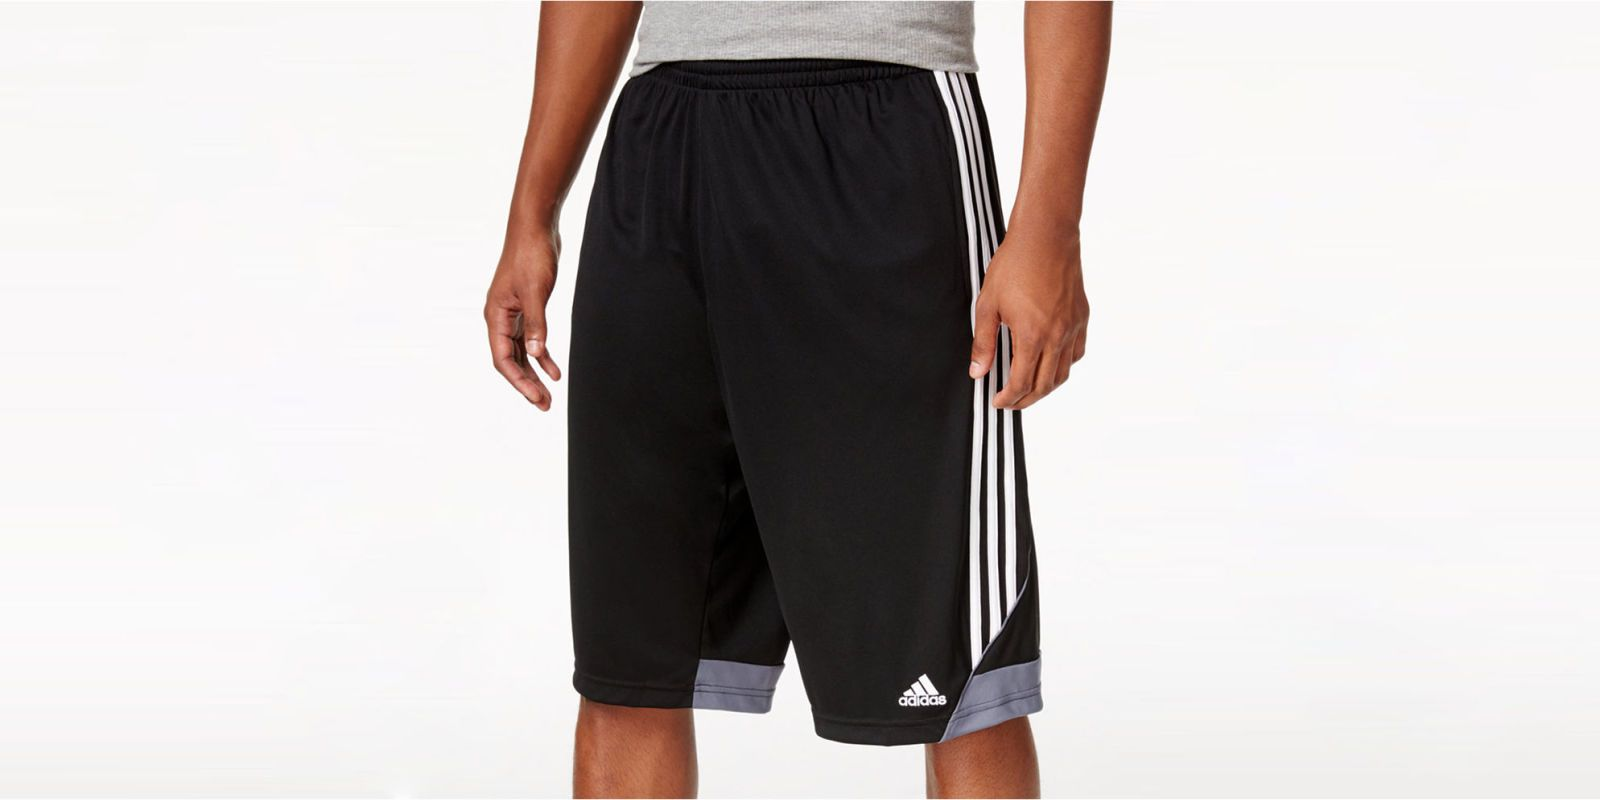 AND1 BASKETBALL SHORTS Basic Mesh Comfortable Outdoor Indoor Red Grey Blue White